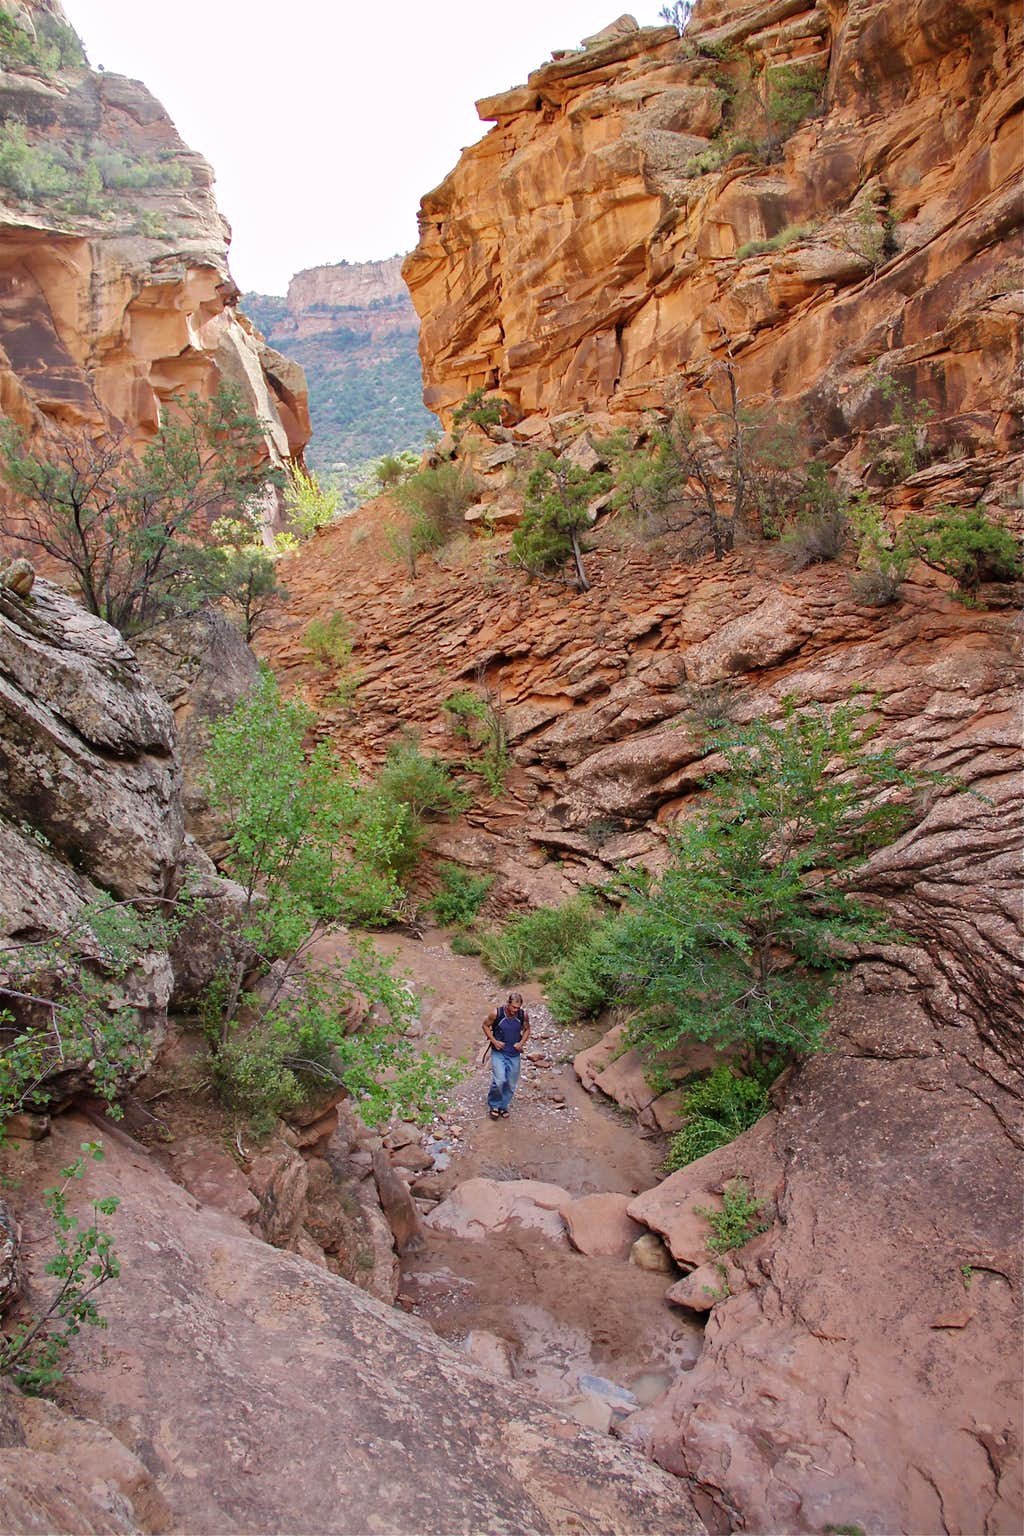 Scenery of Rough Canyon